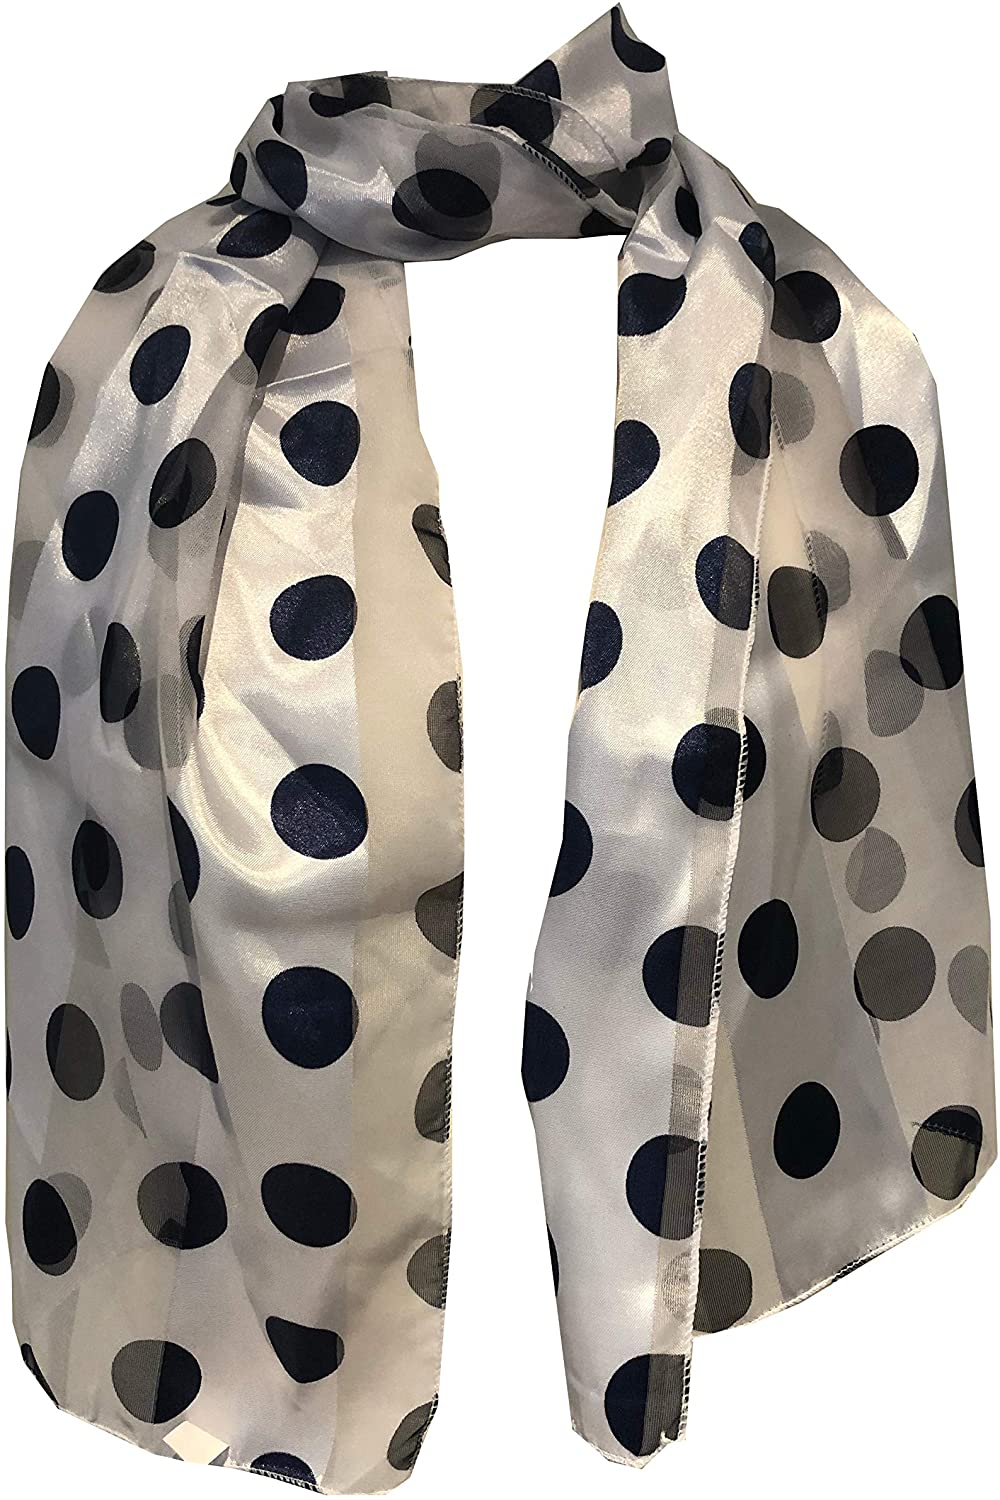 Pamper Yourself Now White with Navy Big spot Thin Pretty Scarf. Lovely with Any Outfit